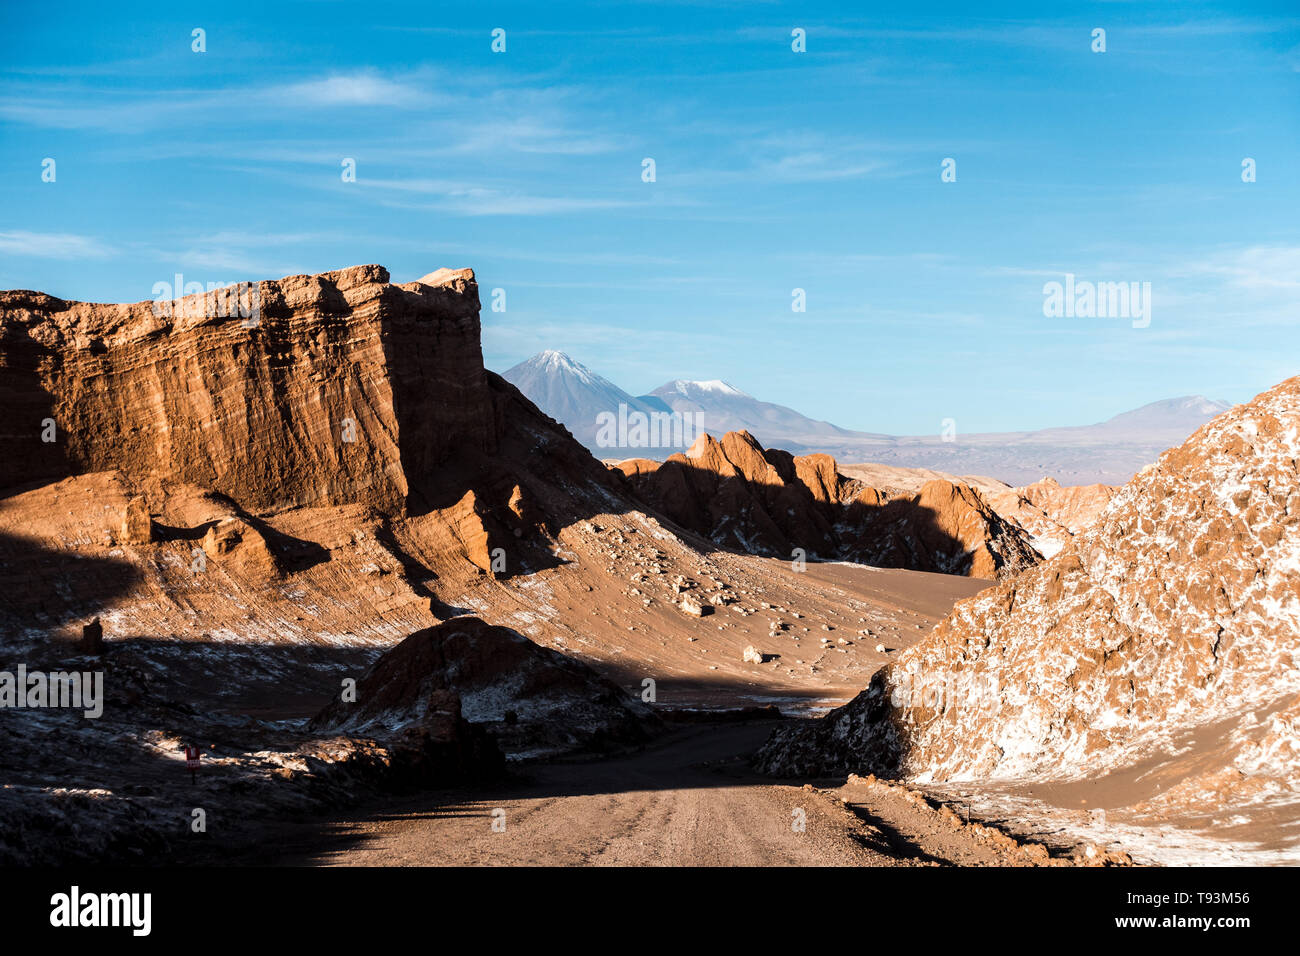 Volcano, Moon Valley, Atacama, Chile. One of the dryest places in the world. - Stock Image